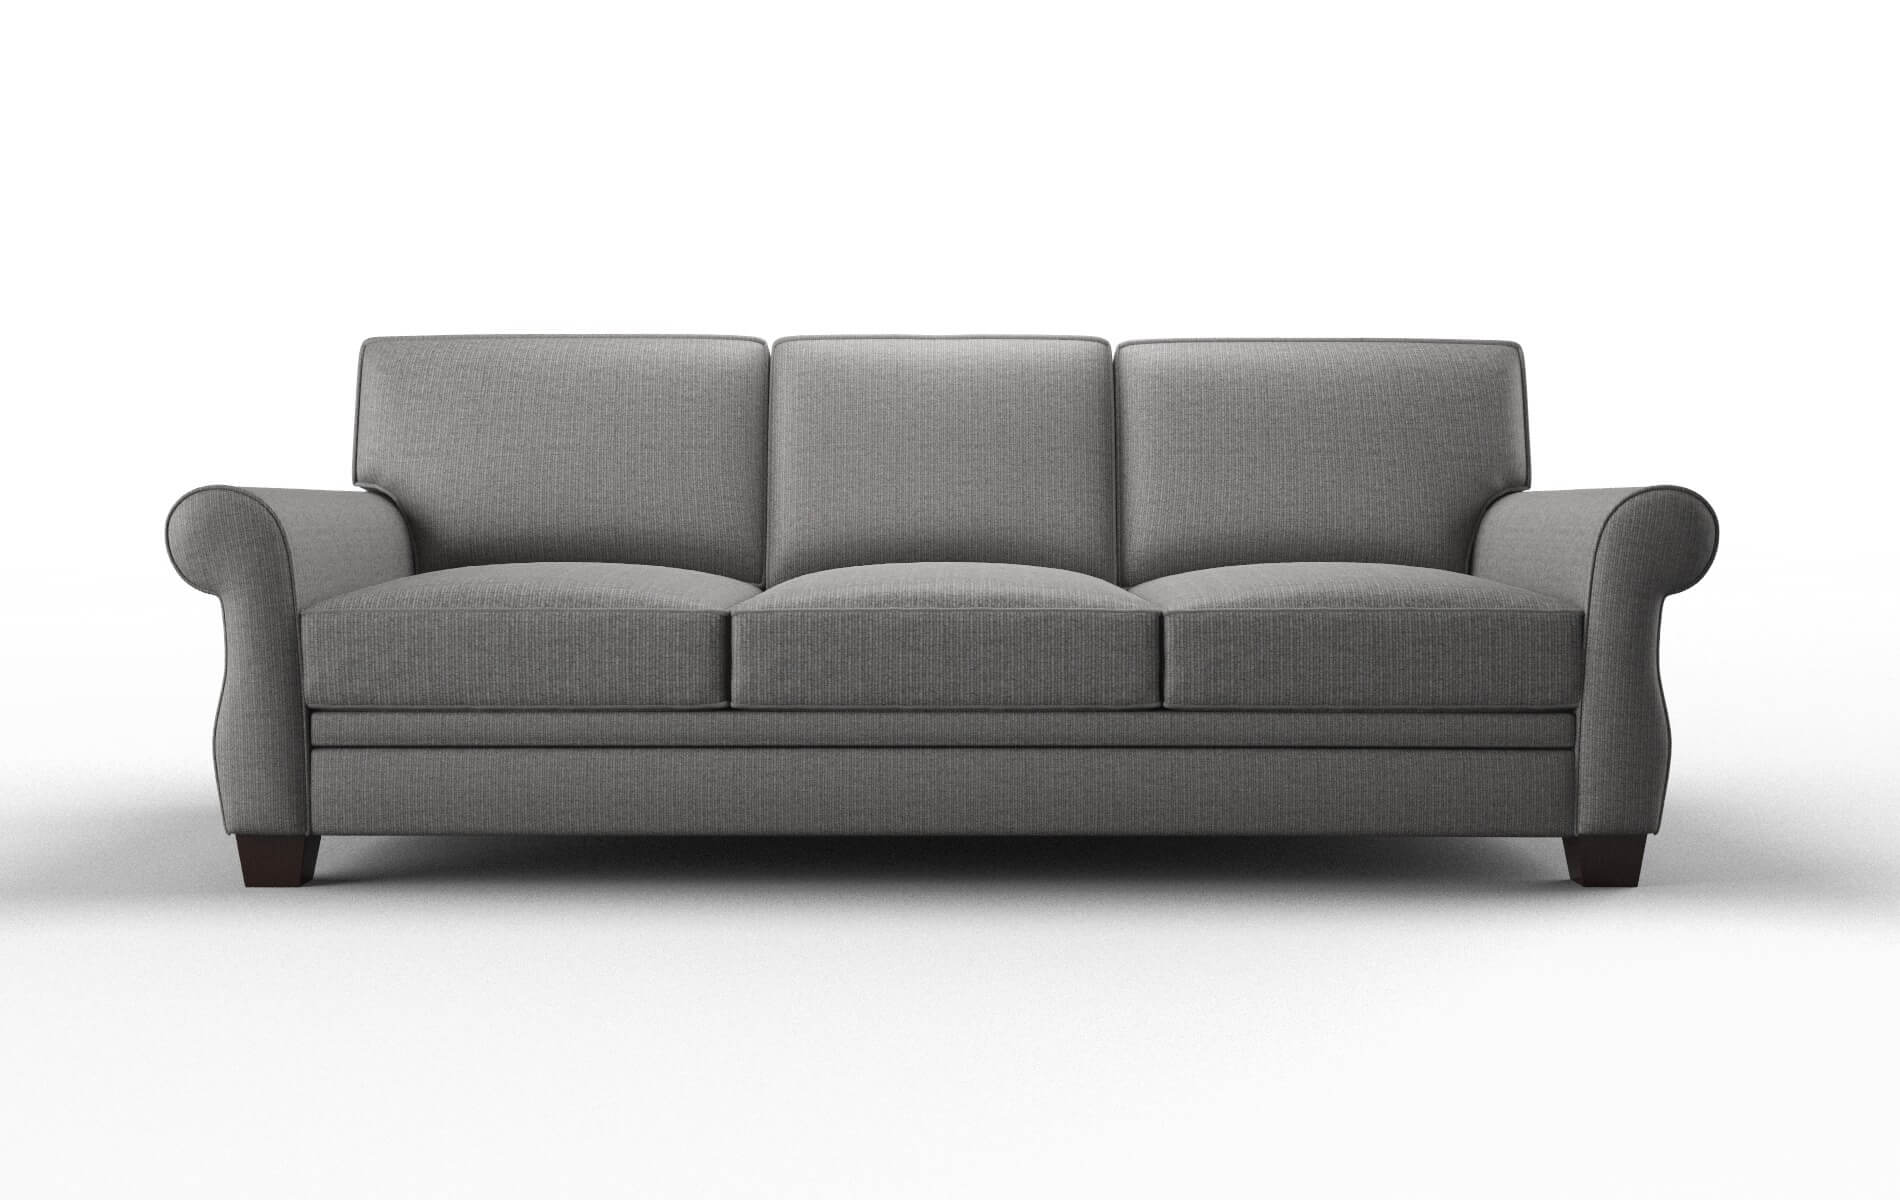 Groovy Rome Parker Graphite Sofa Sleeper Dreamsofa Ocoug Best Dining Table And Chair Ideas Images Ocougorg